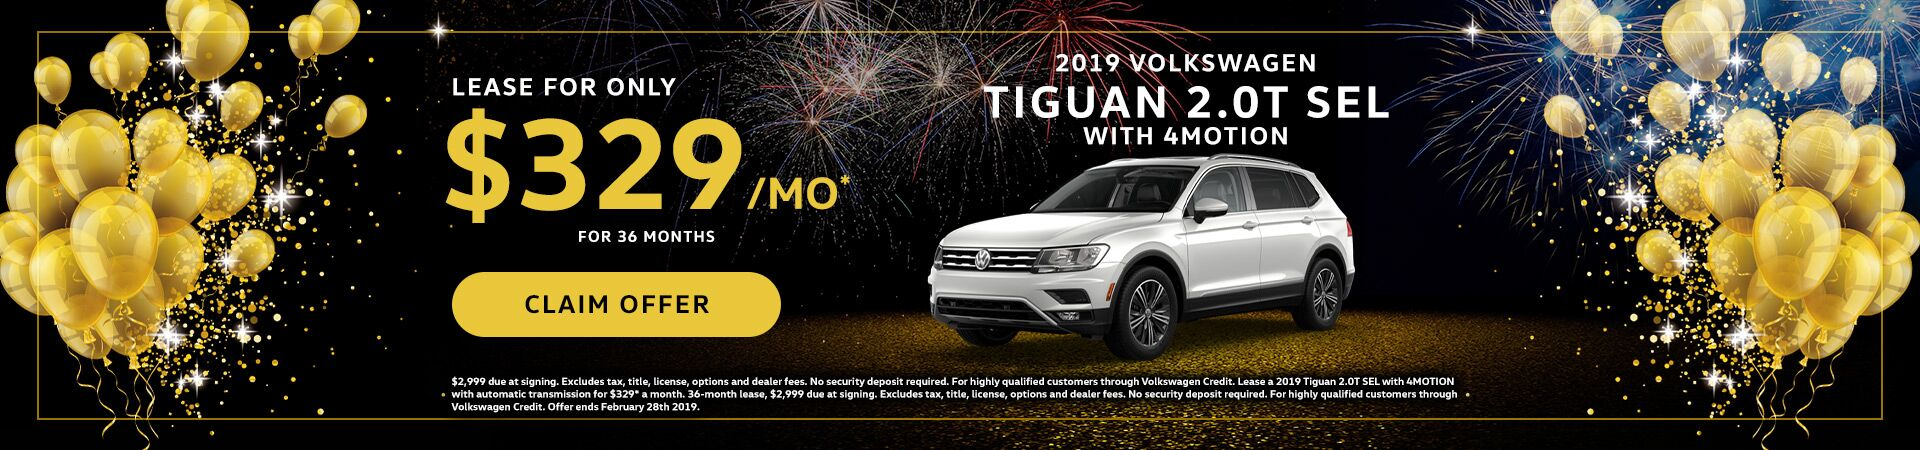 2019 VW Tiguan January Special